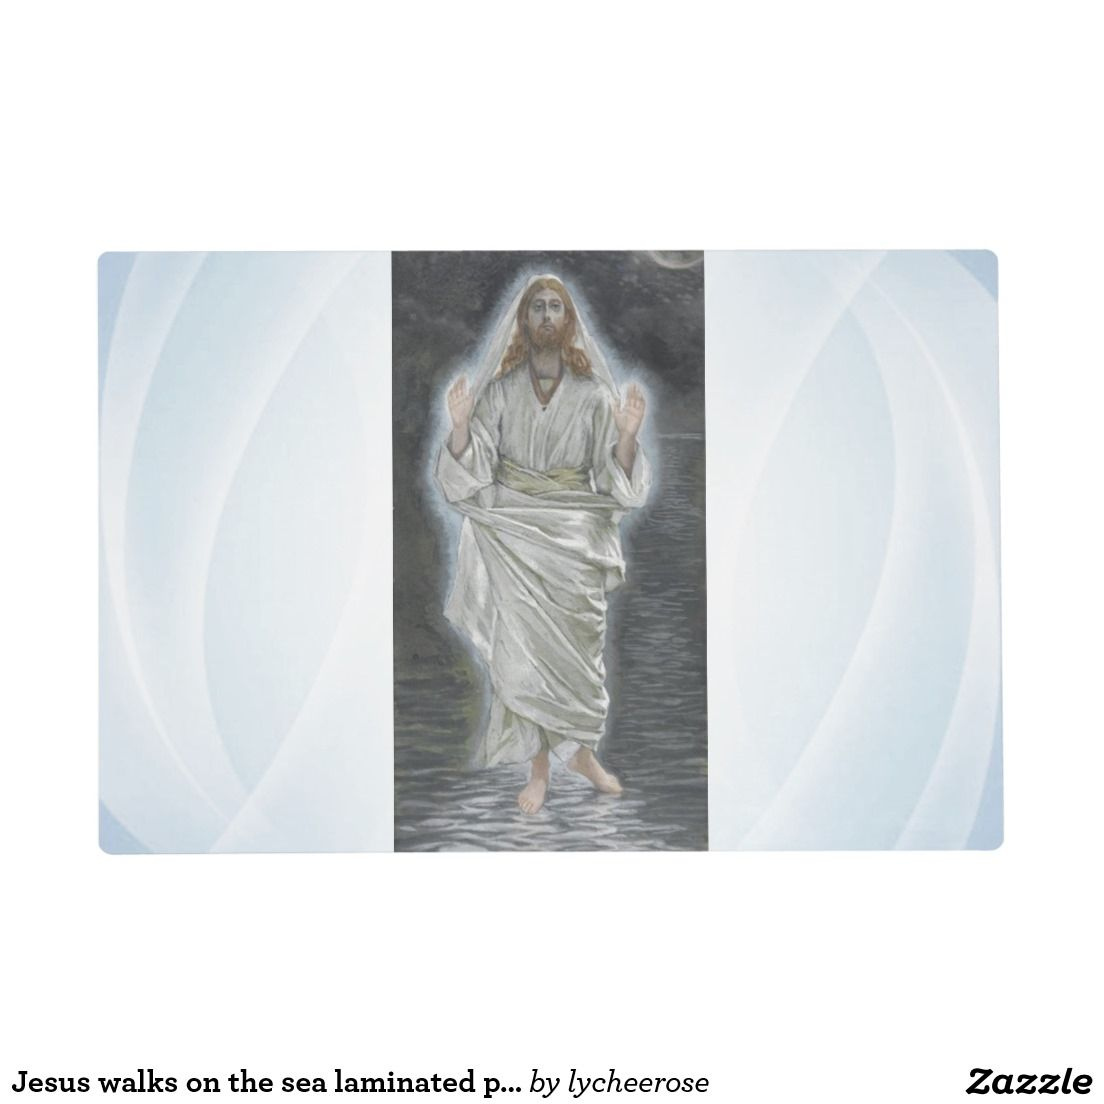 Jesus walks on the sea laminated placemat